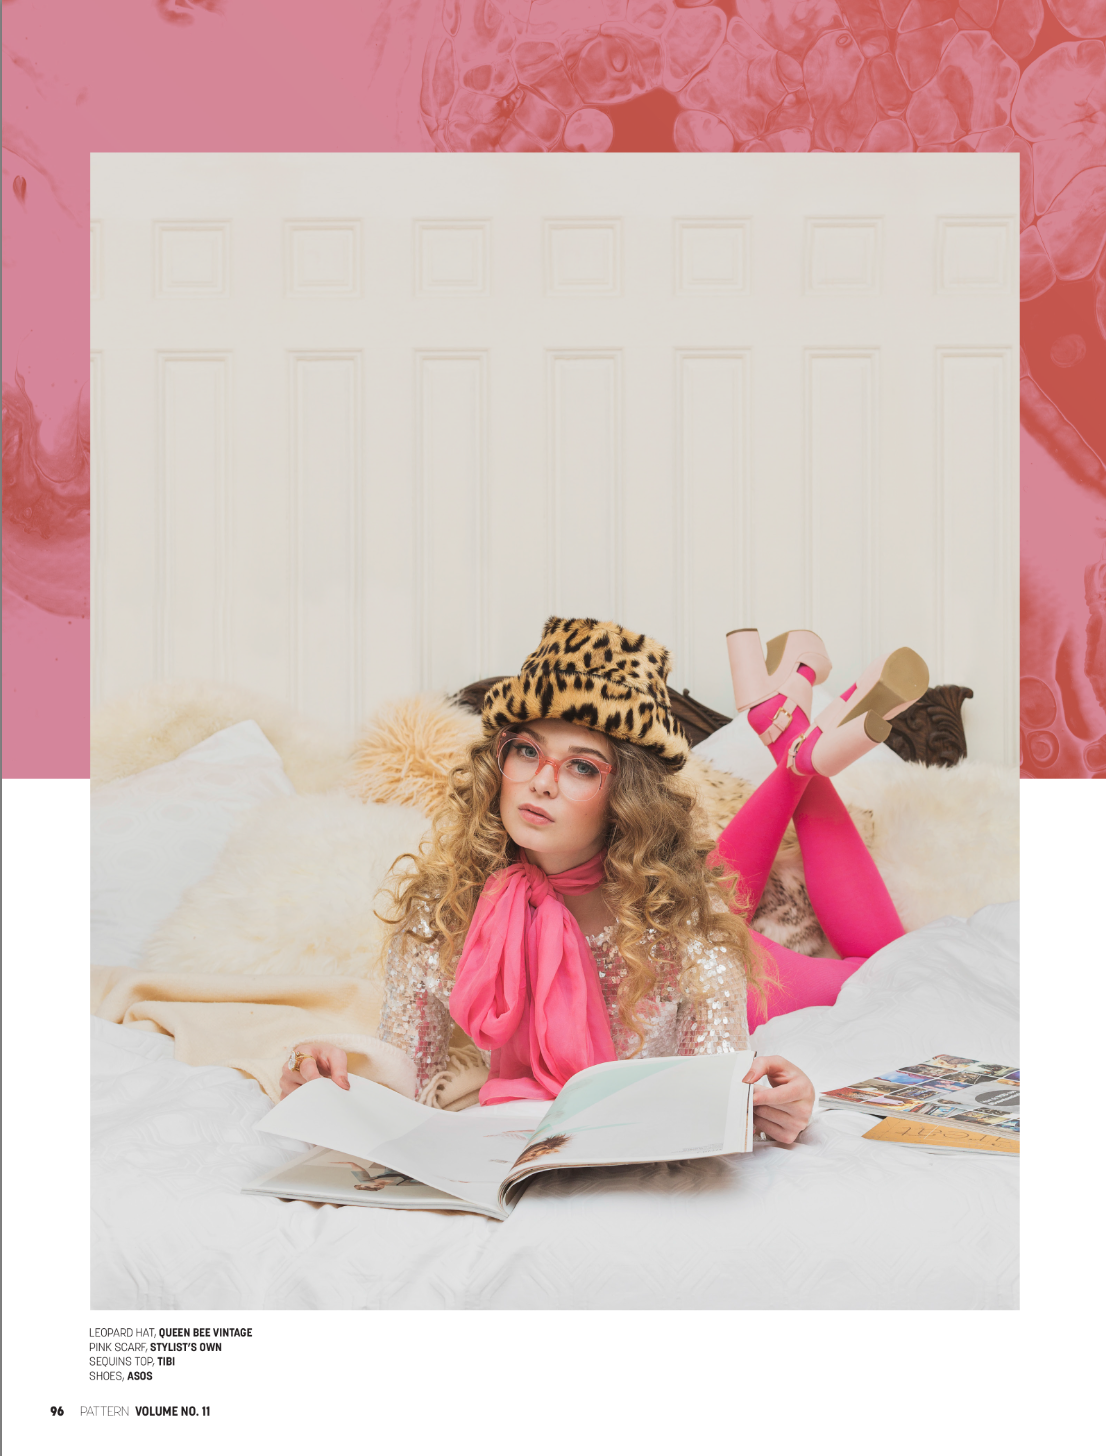 Screen Shot 2017-04-05 at 10.10.26 PM